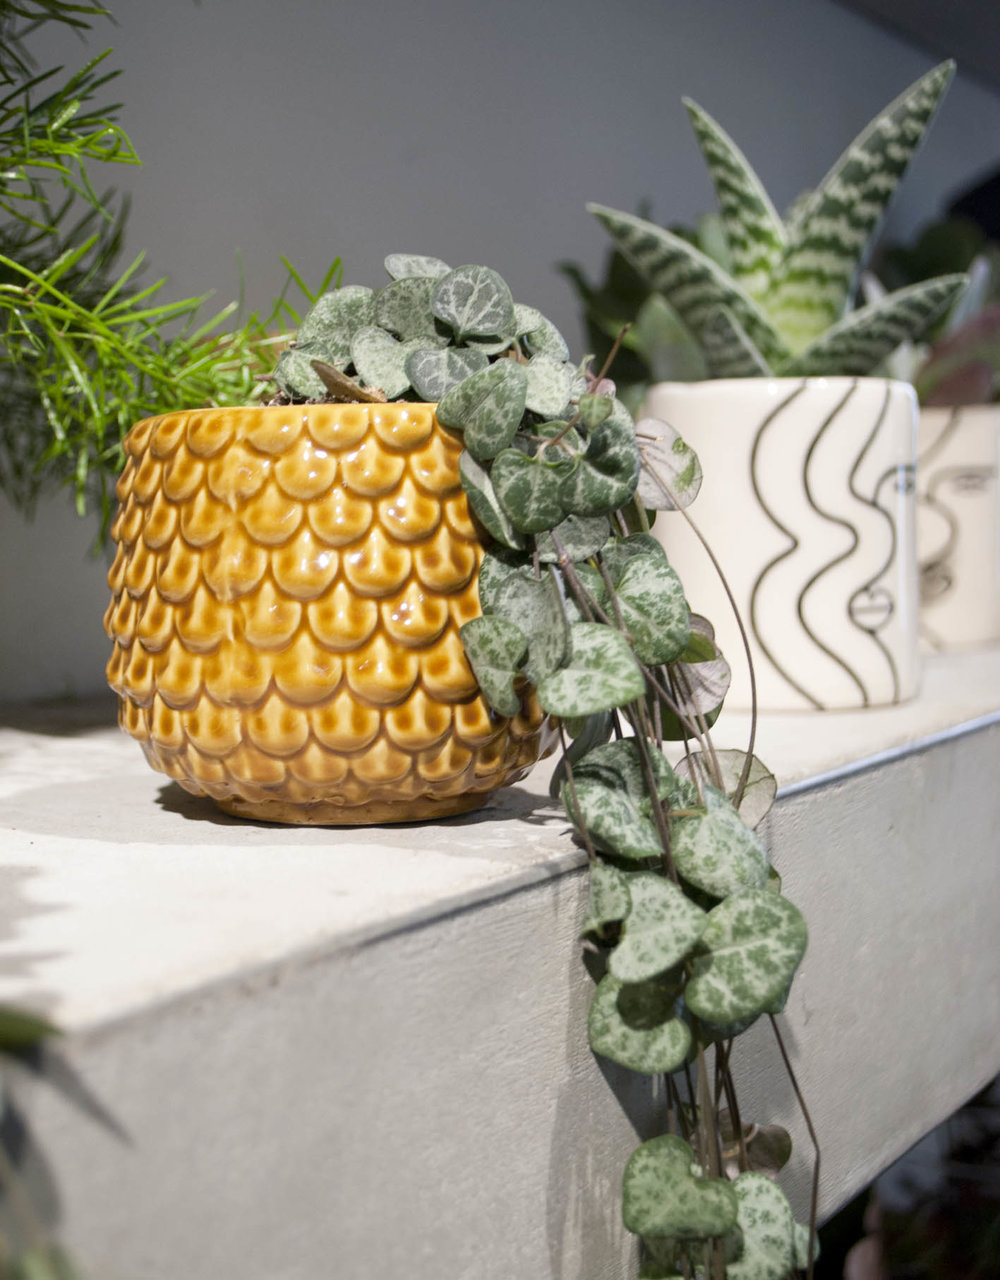 Great texture and colour on this plant and pot combo